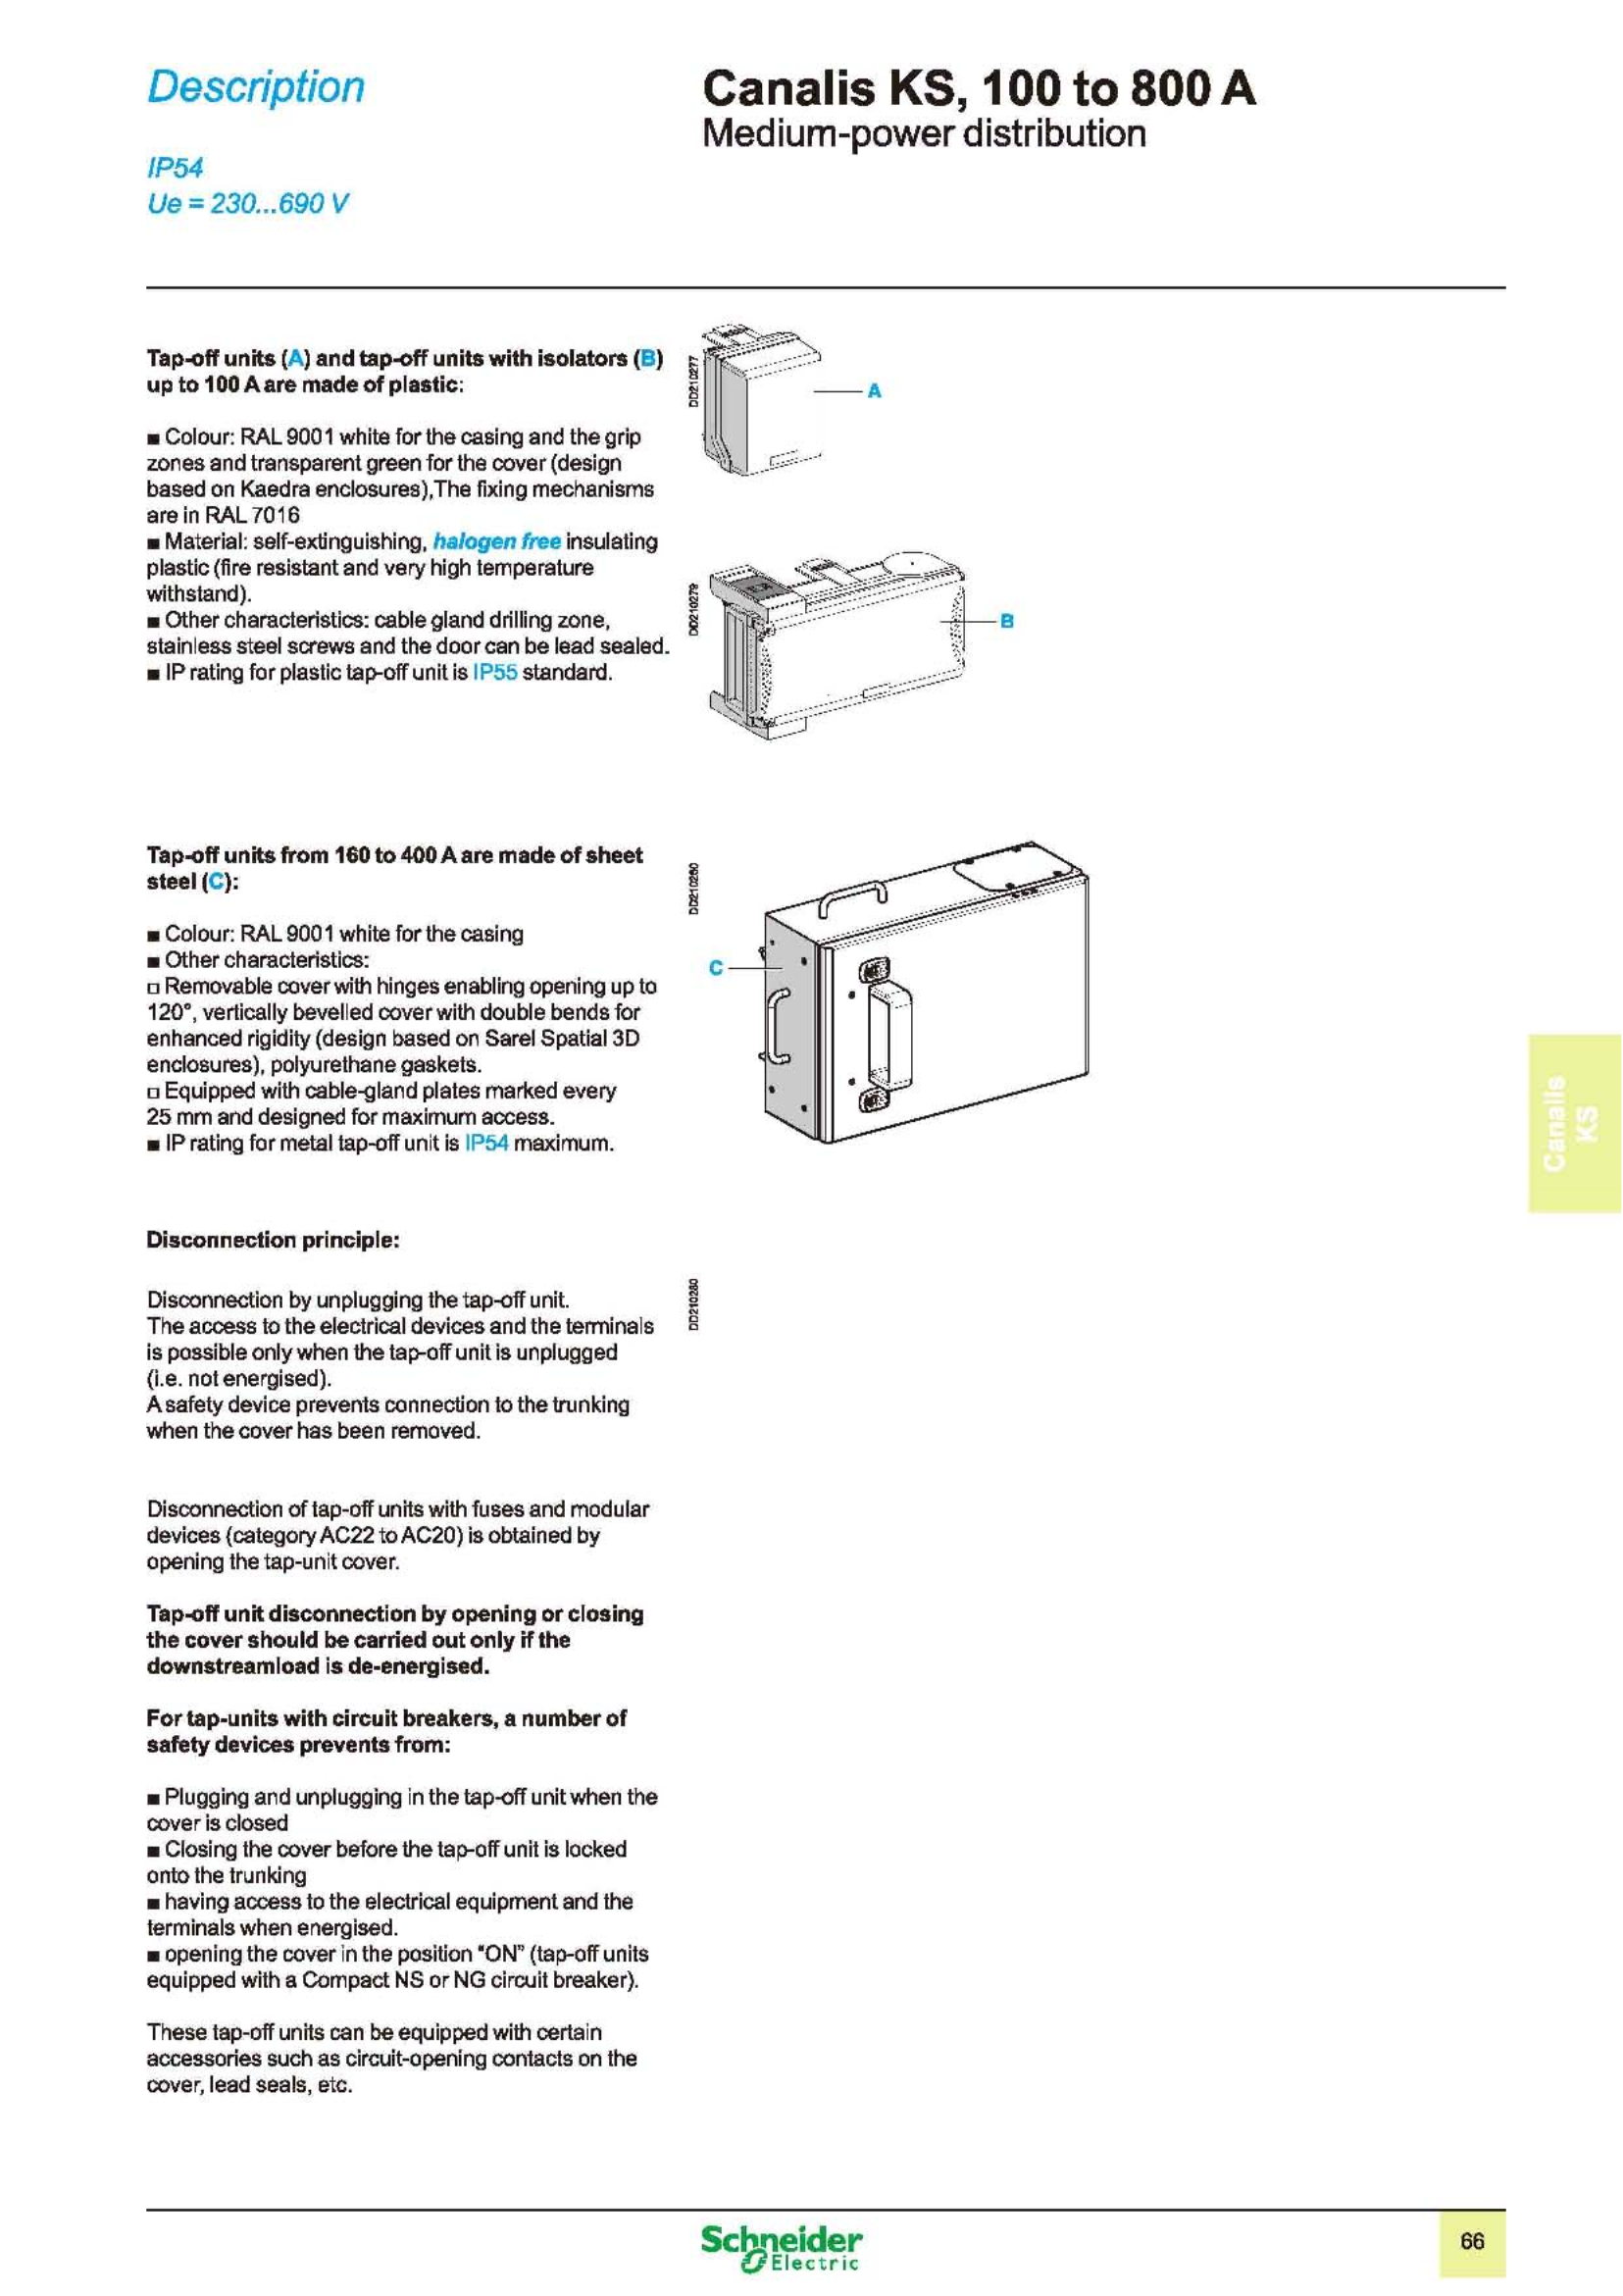 Canalis Busway From 20 To 800 A Designing Building Electrical Circuits For Over 25 Years Screw Full Screen Mode